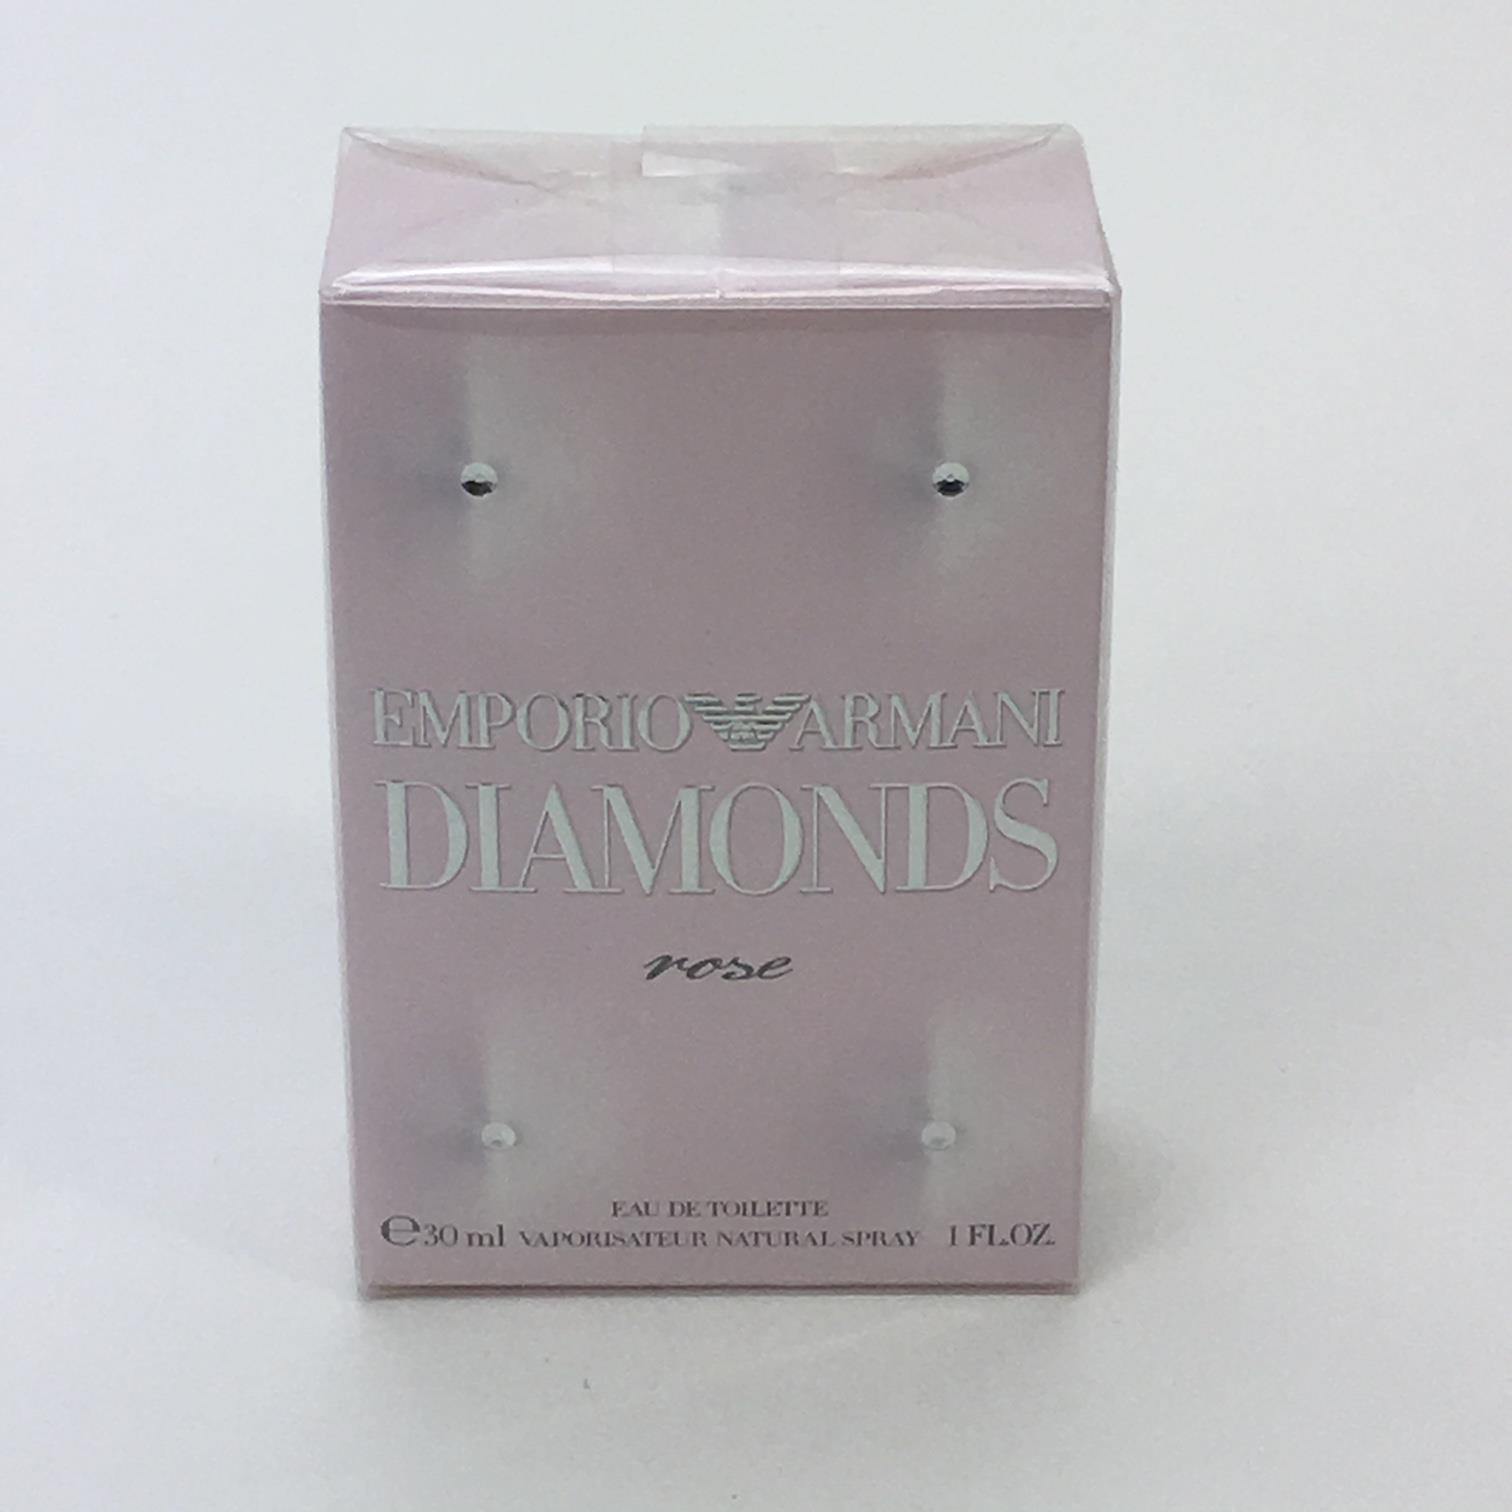 Diamonds Rose 30ml Eau De Toilette By Emporio Armani Hares Graces